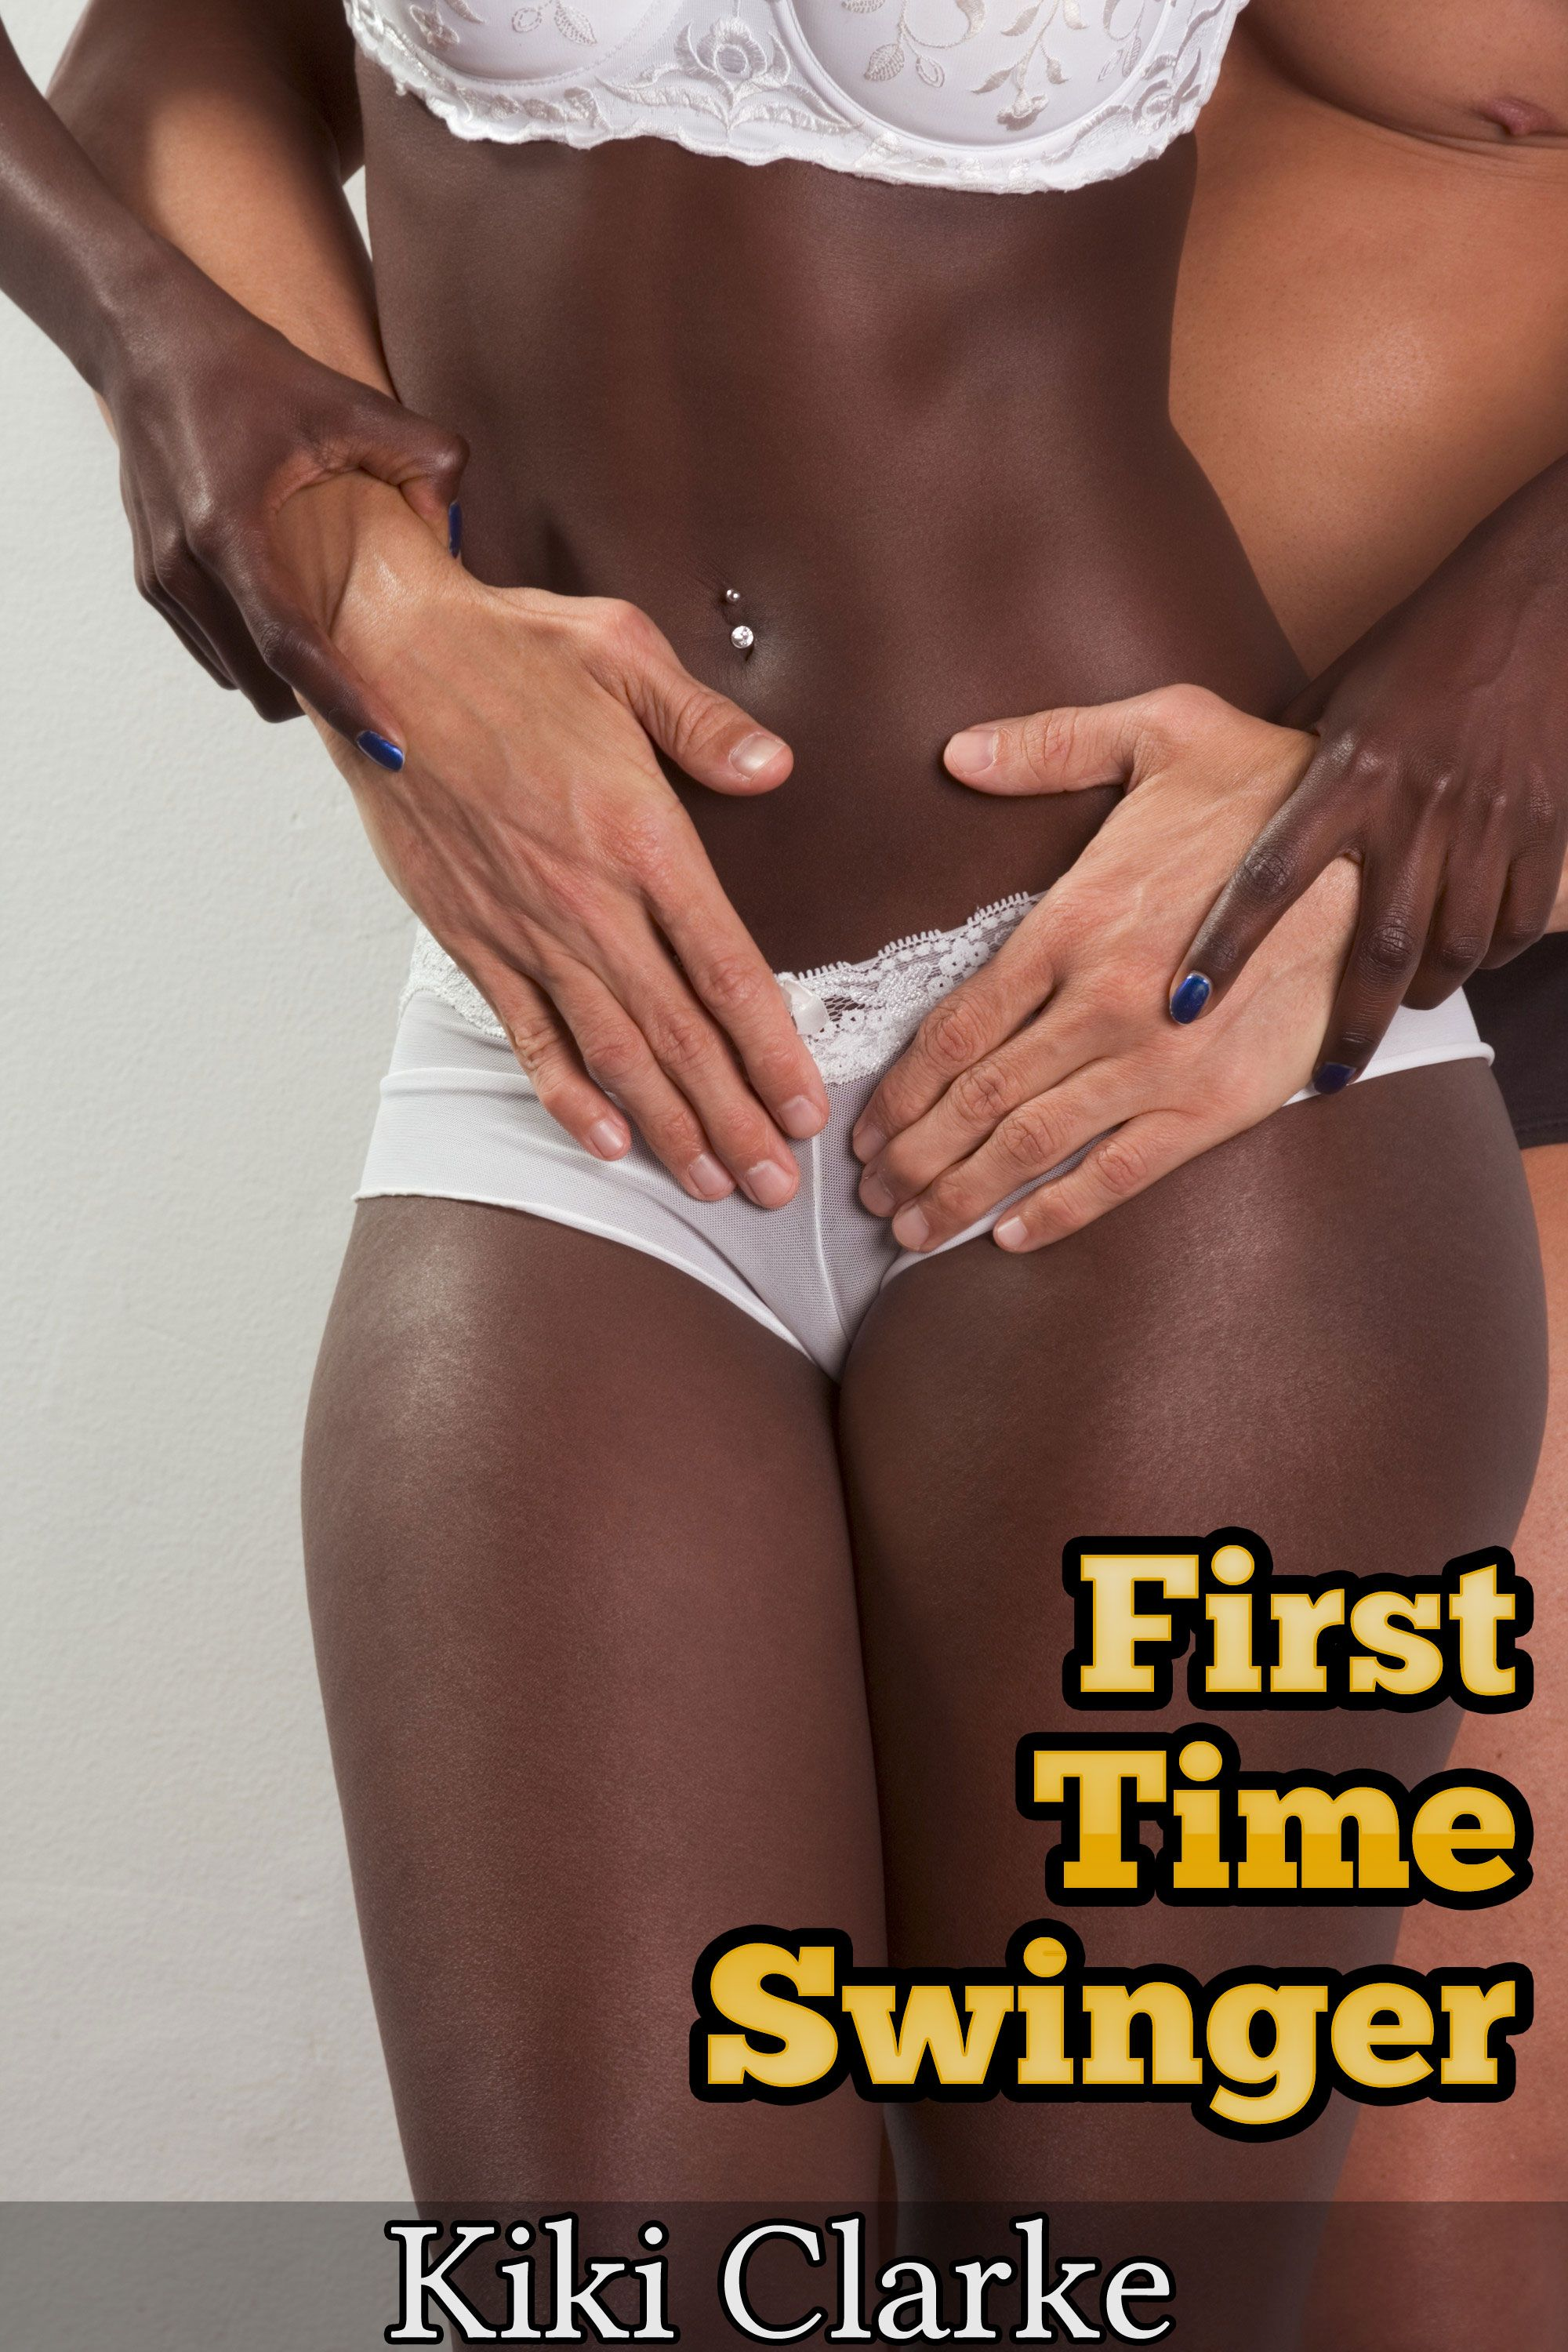 First time swinger sex stories pity, that